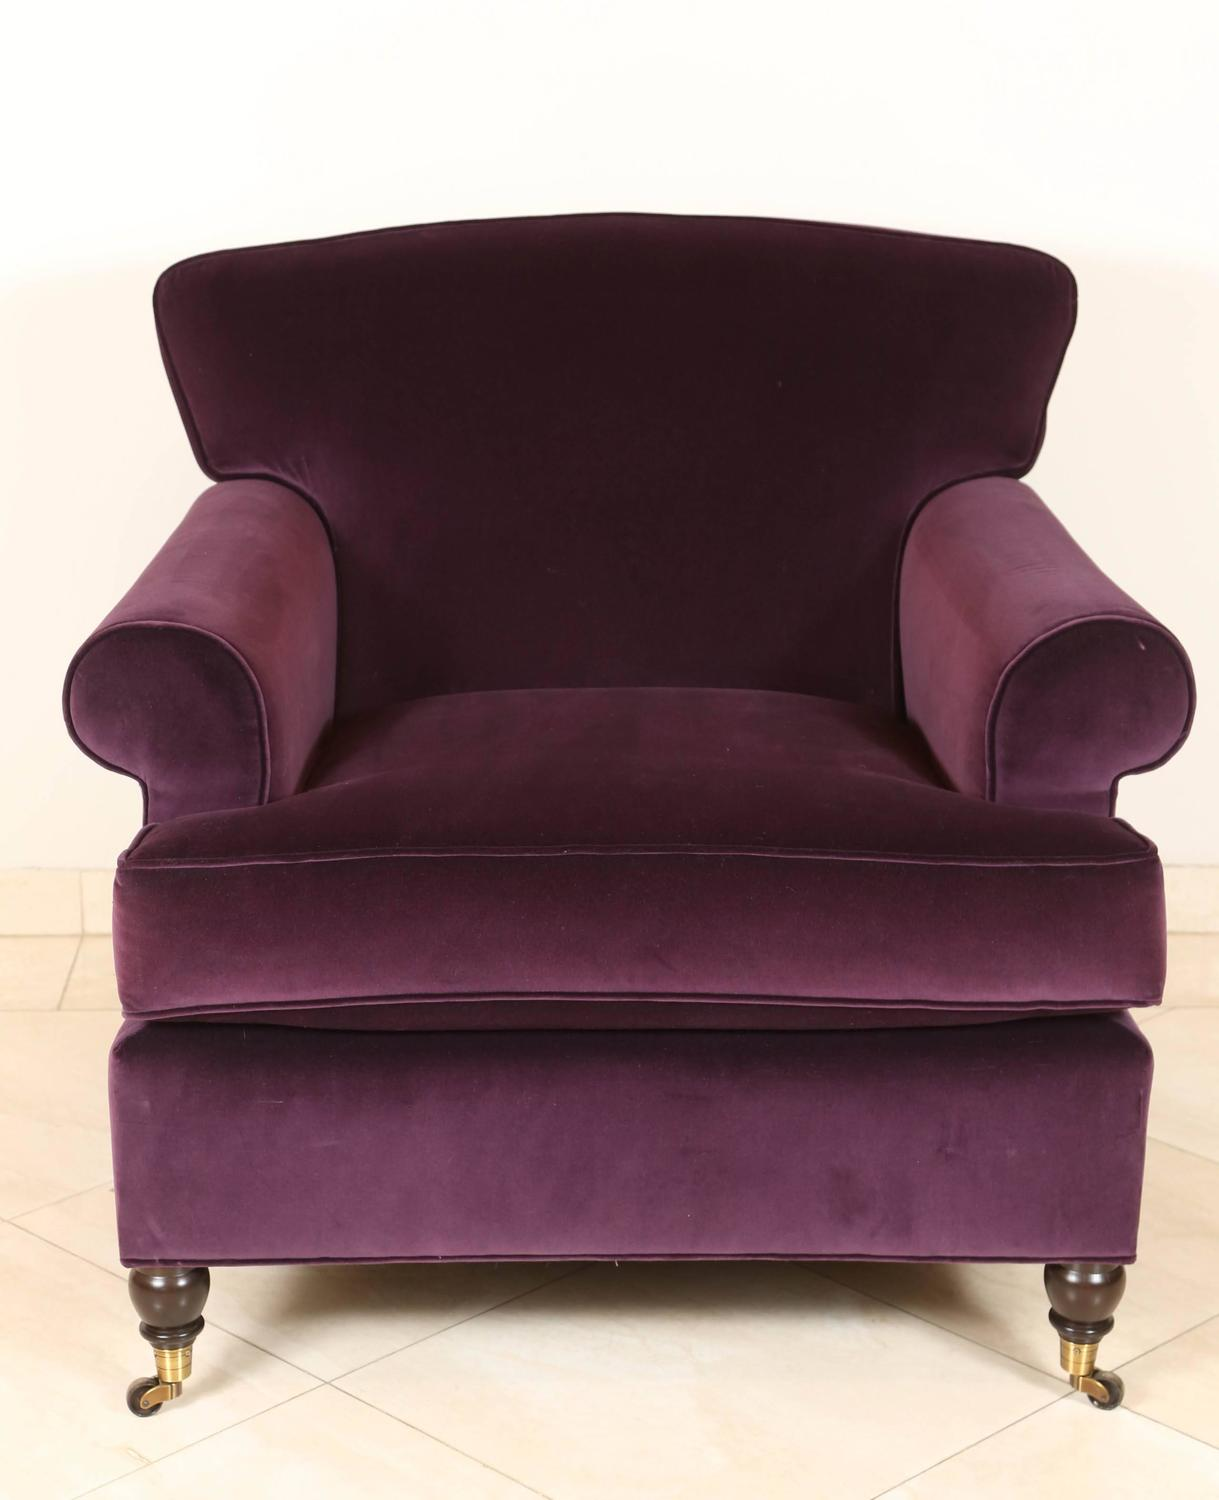 french club chairs for sale positions on a chair purple mohair lounge at 1stdibs